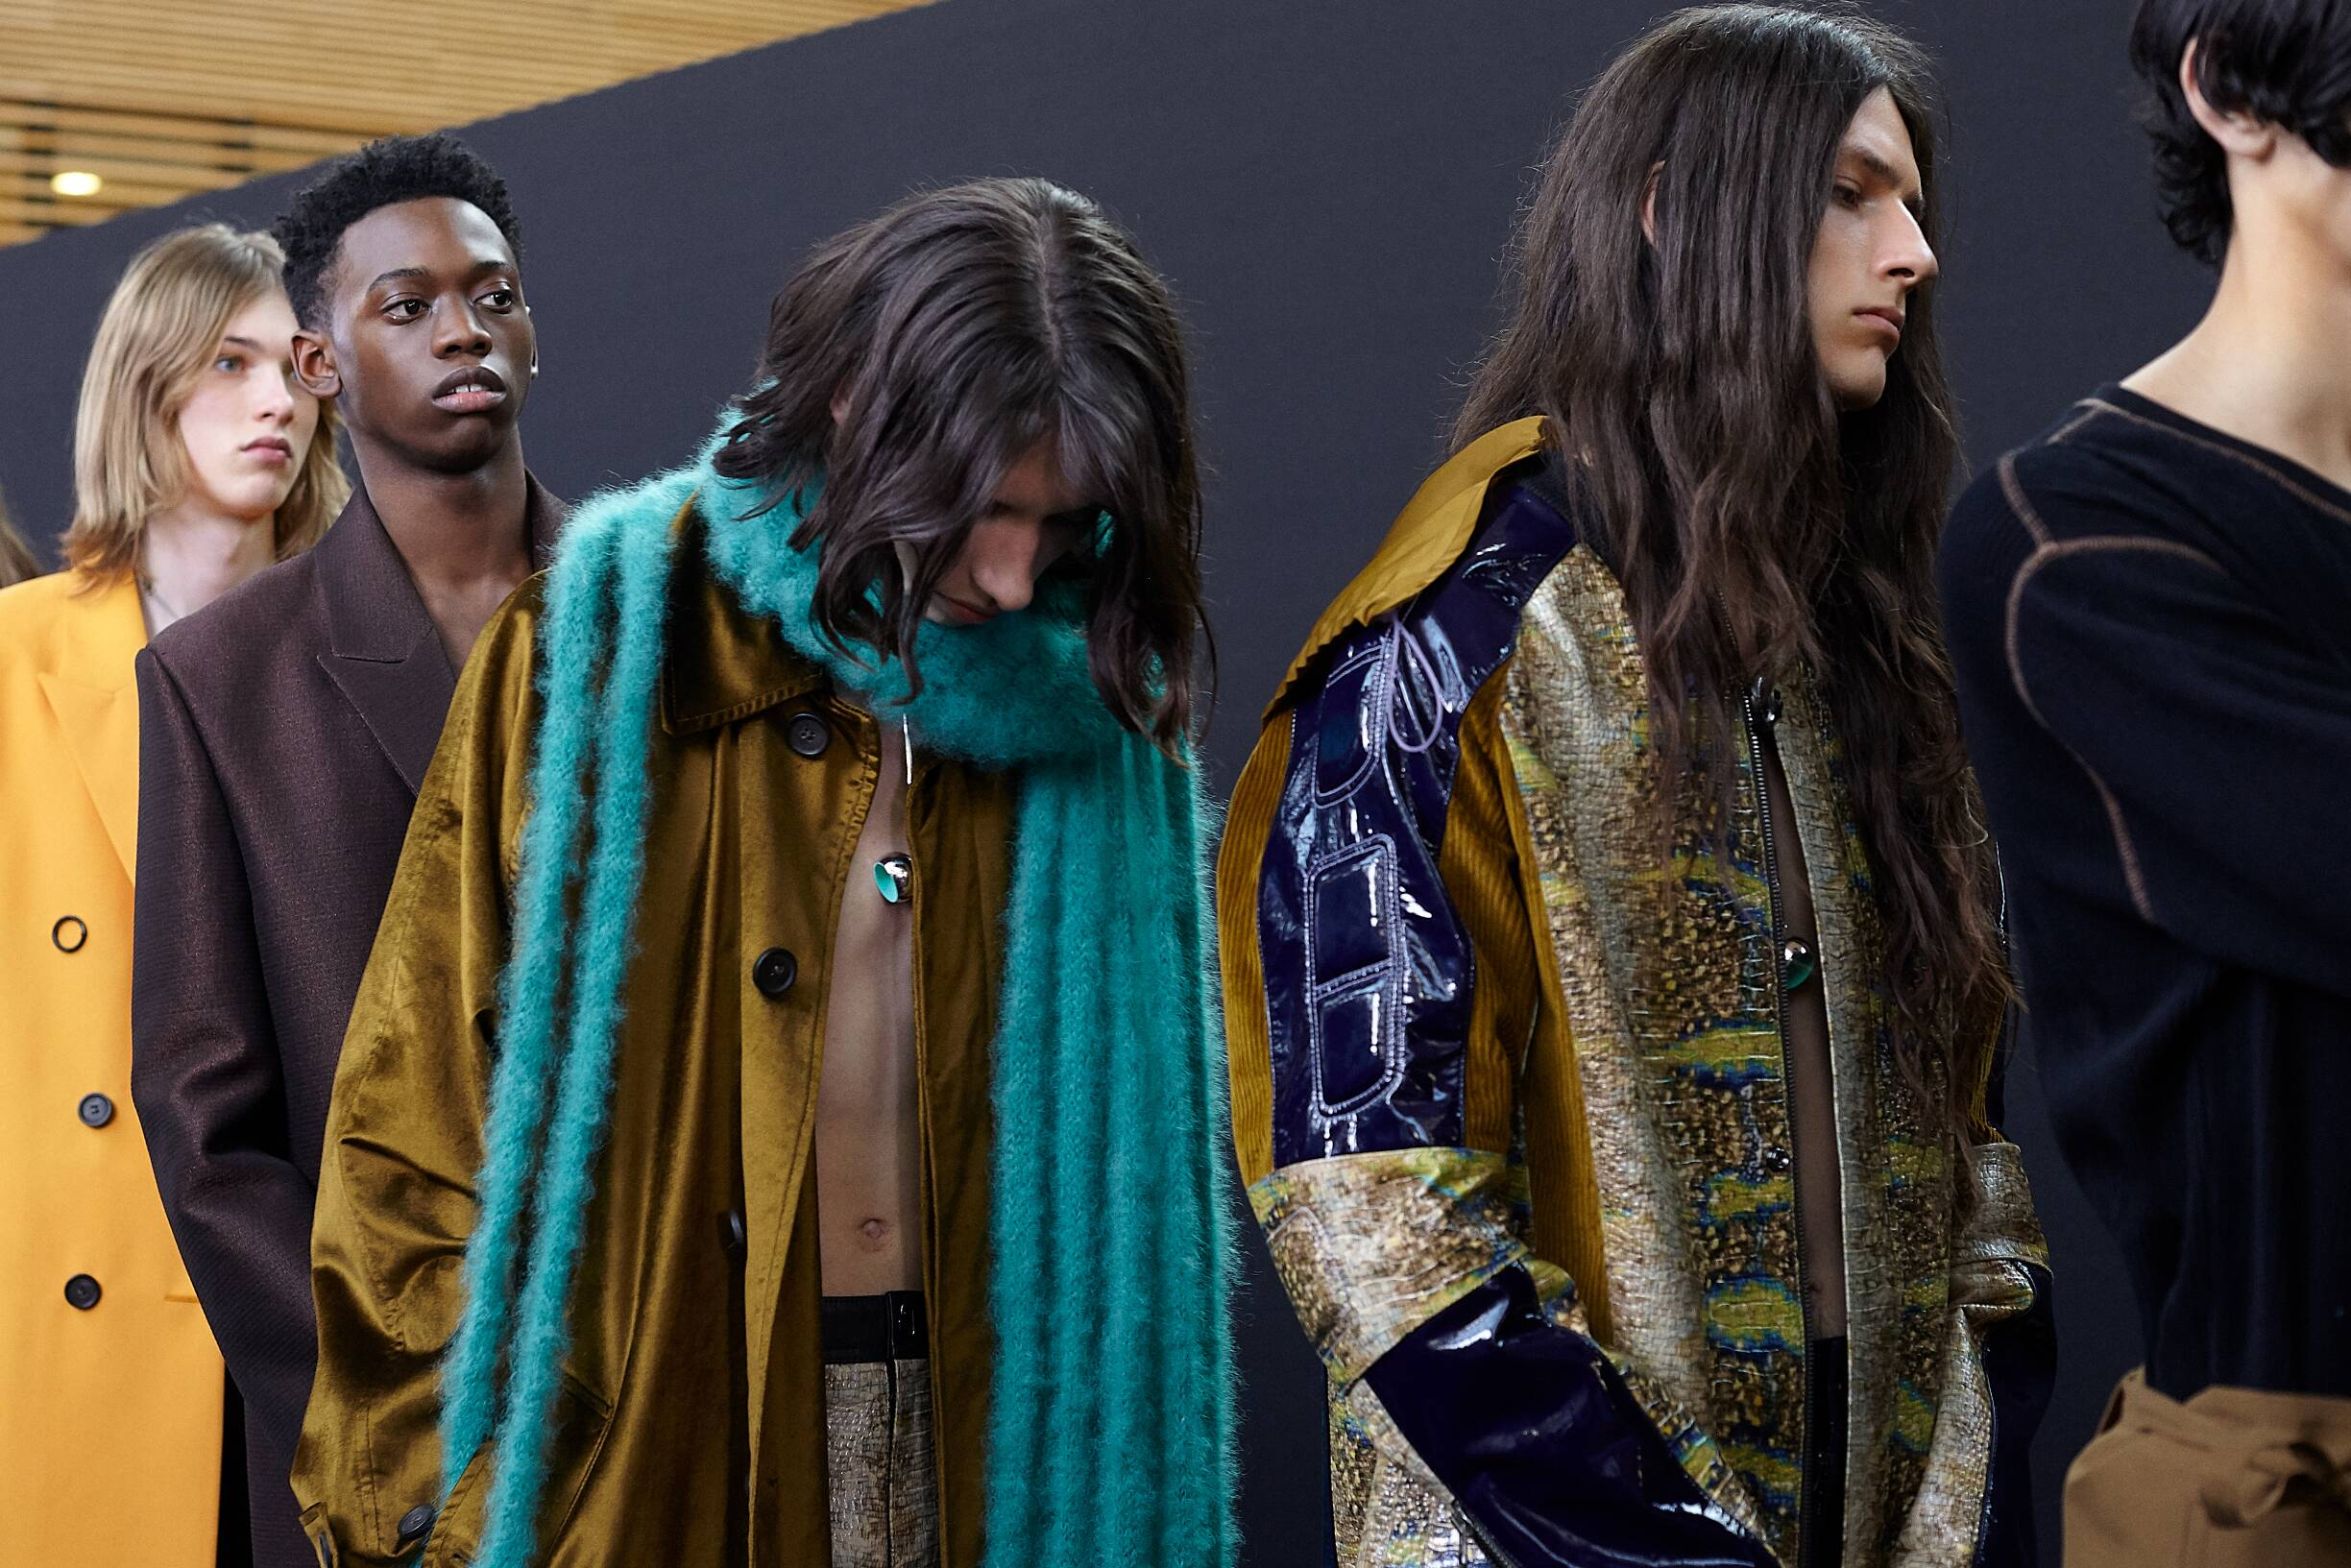 Backstage Acne Studios Fashion Show 2019 Paris